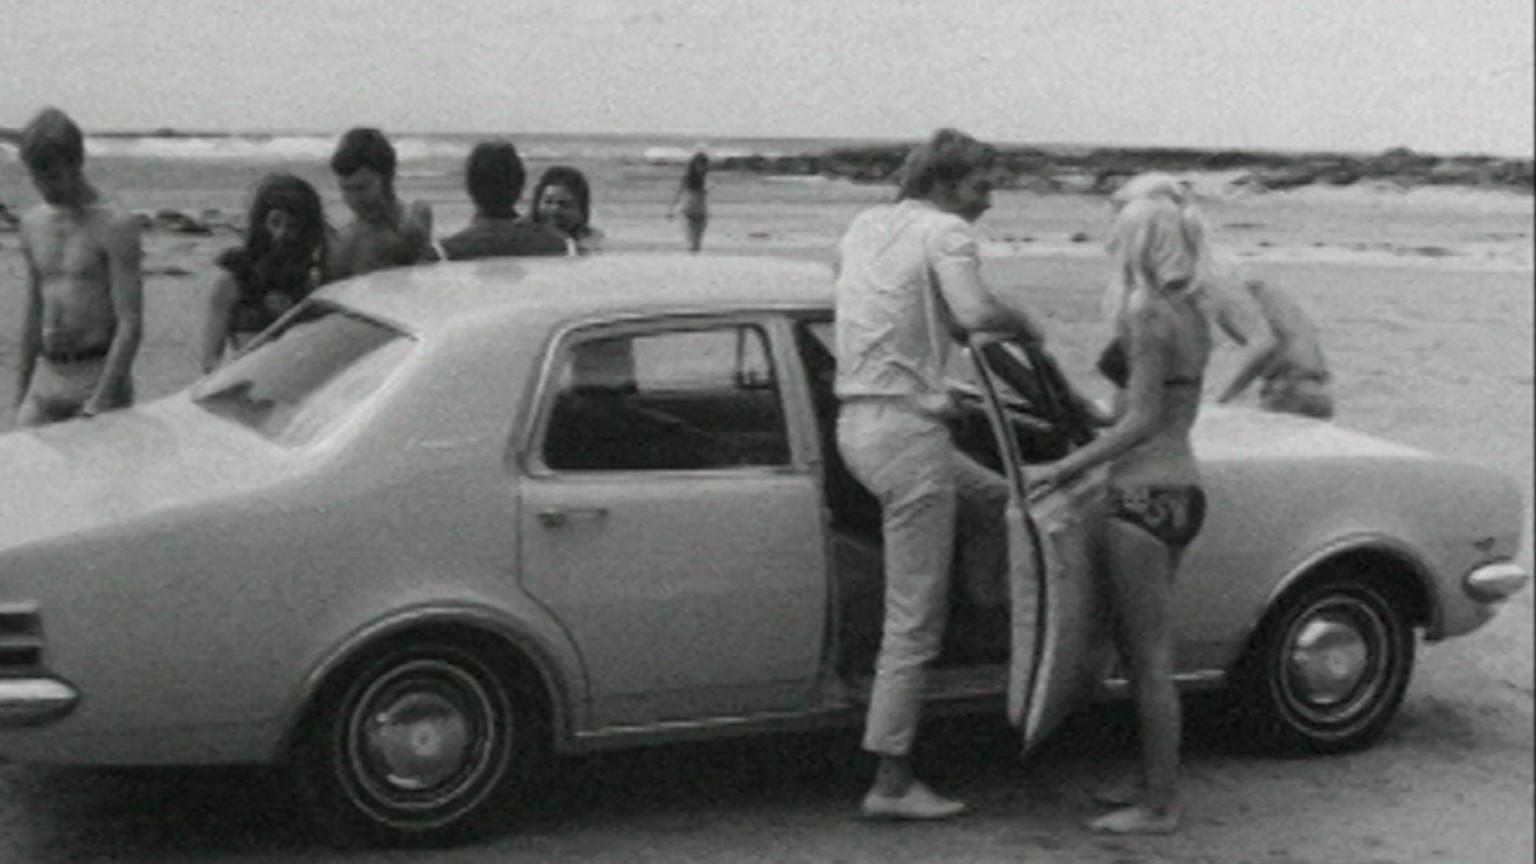 A group of young people stand around a Holden car on a beach